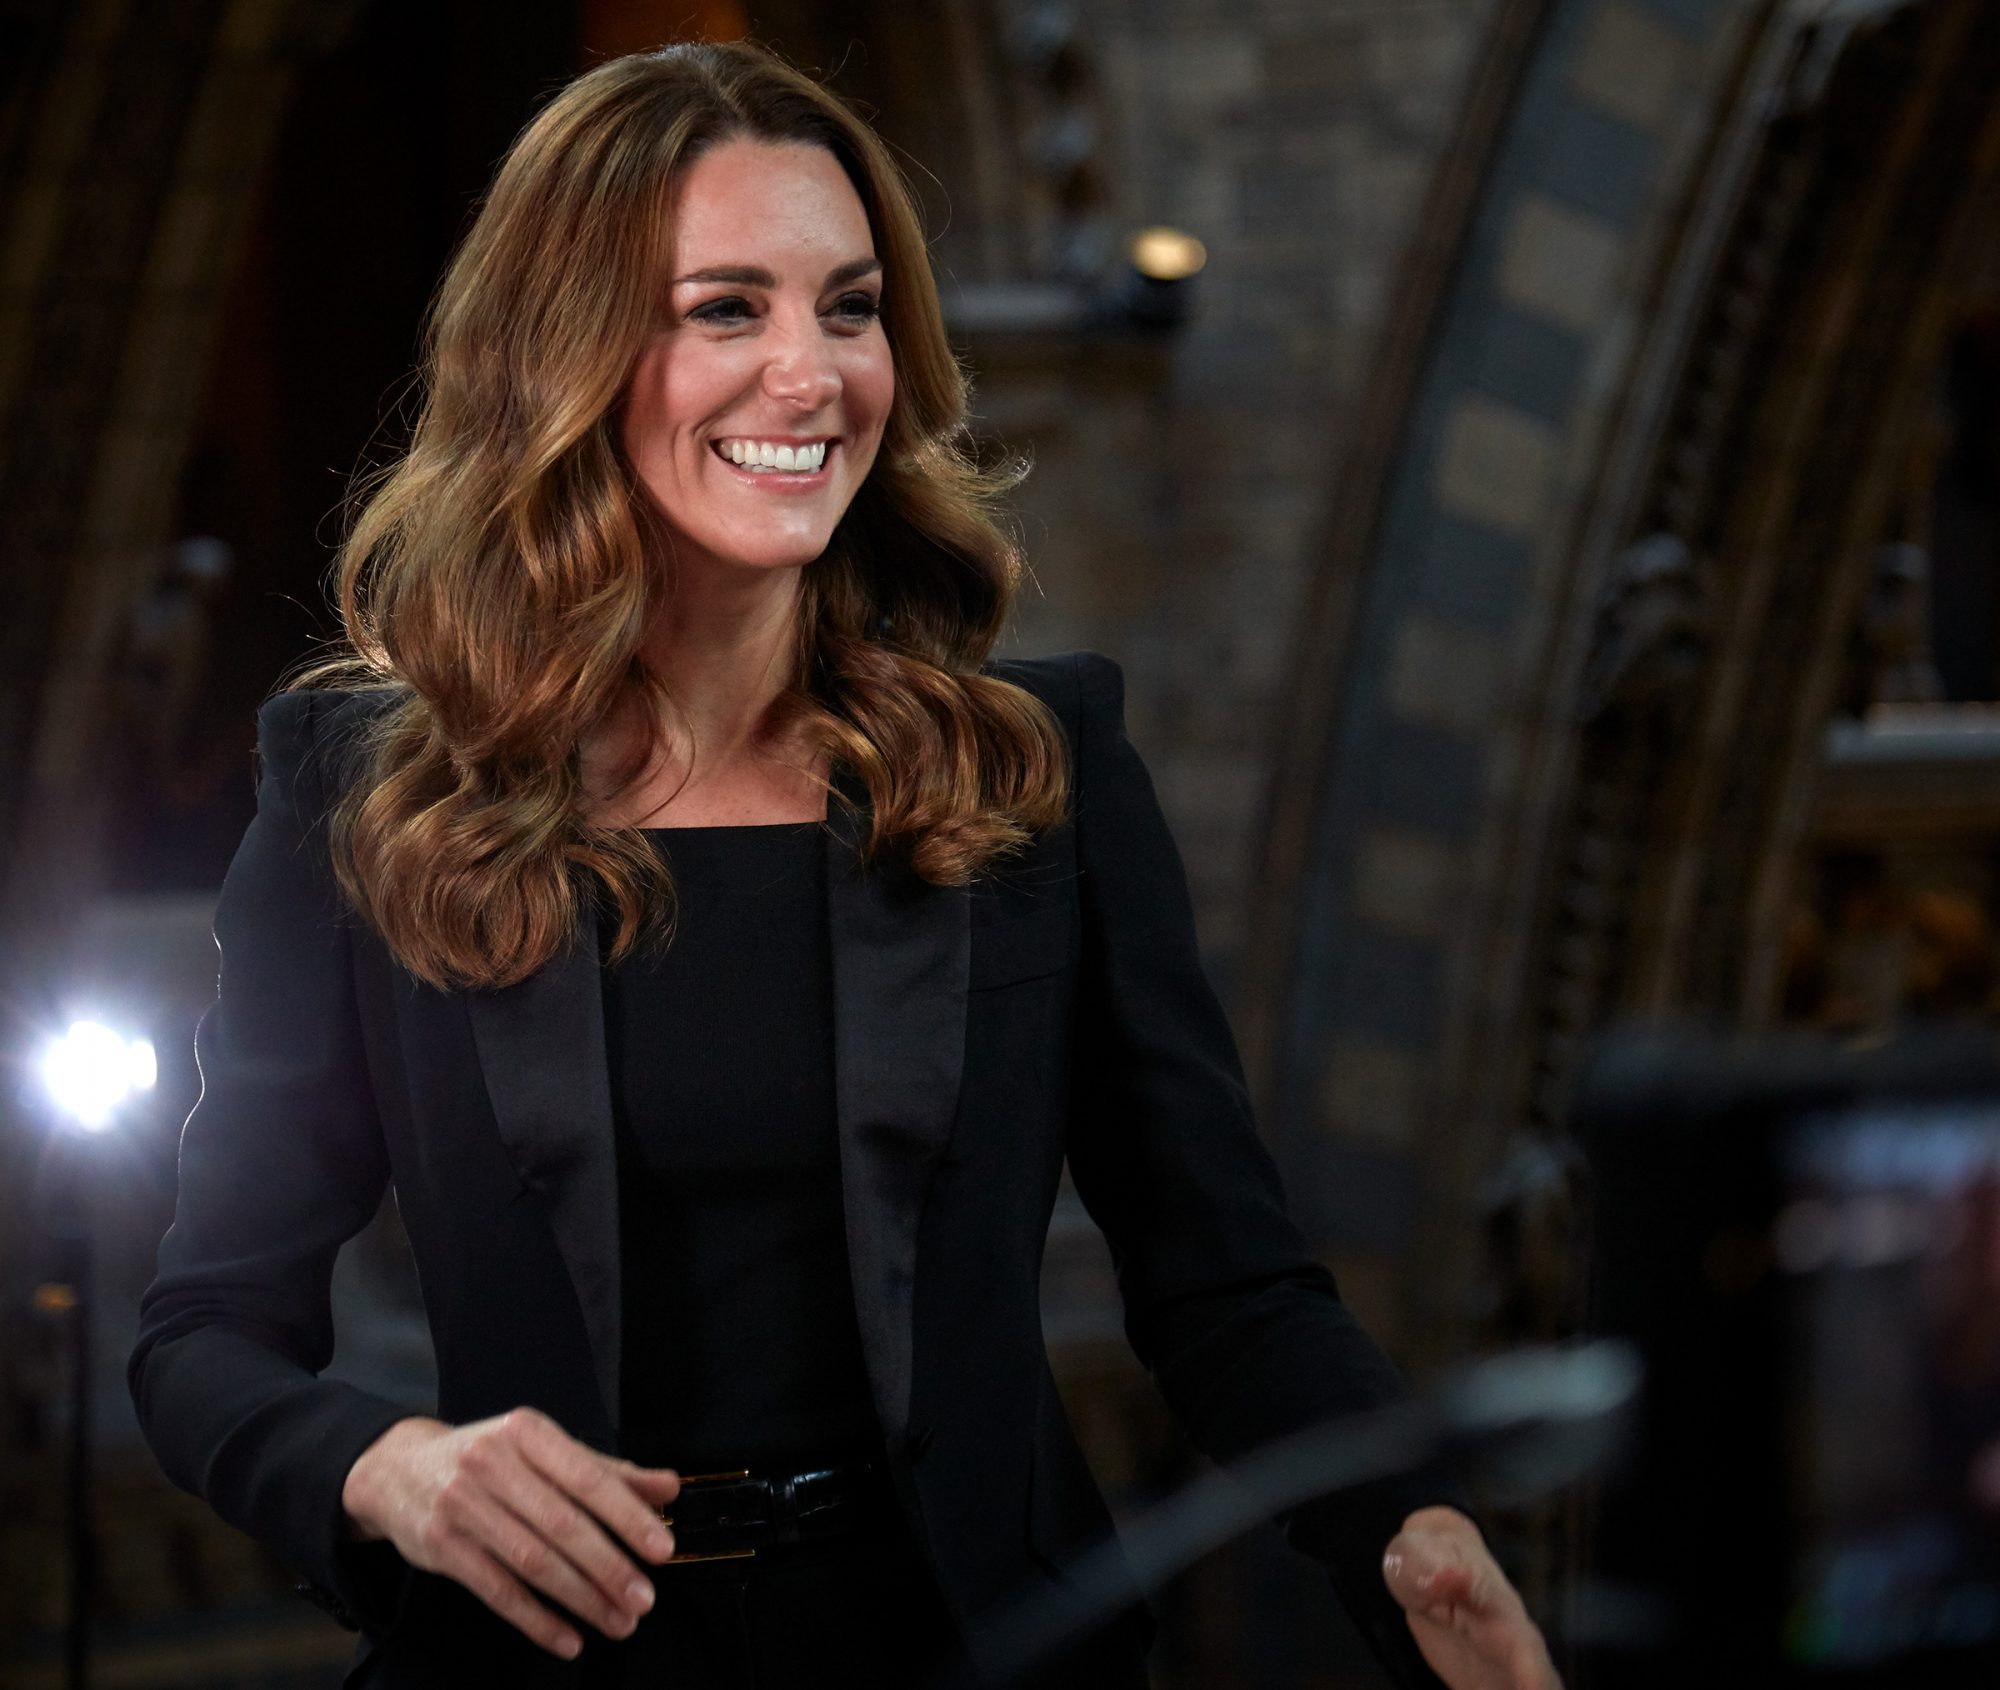 kate middleton reopens natural history museum people com kate middleton reopens natural history